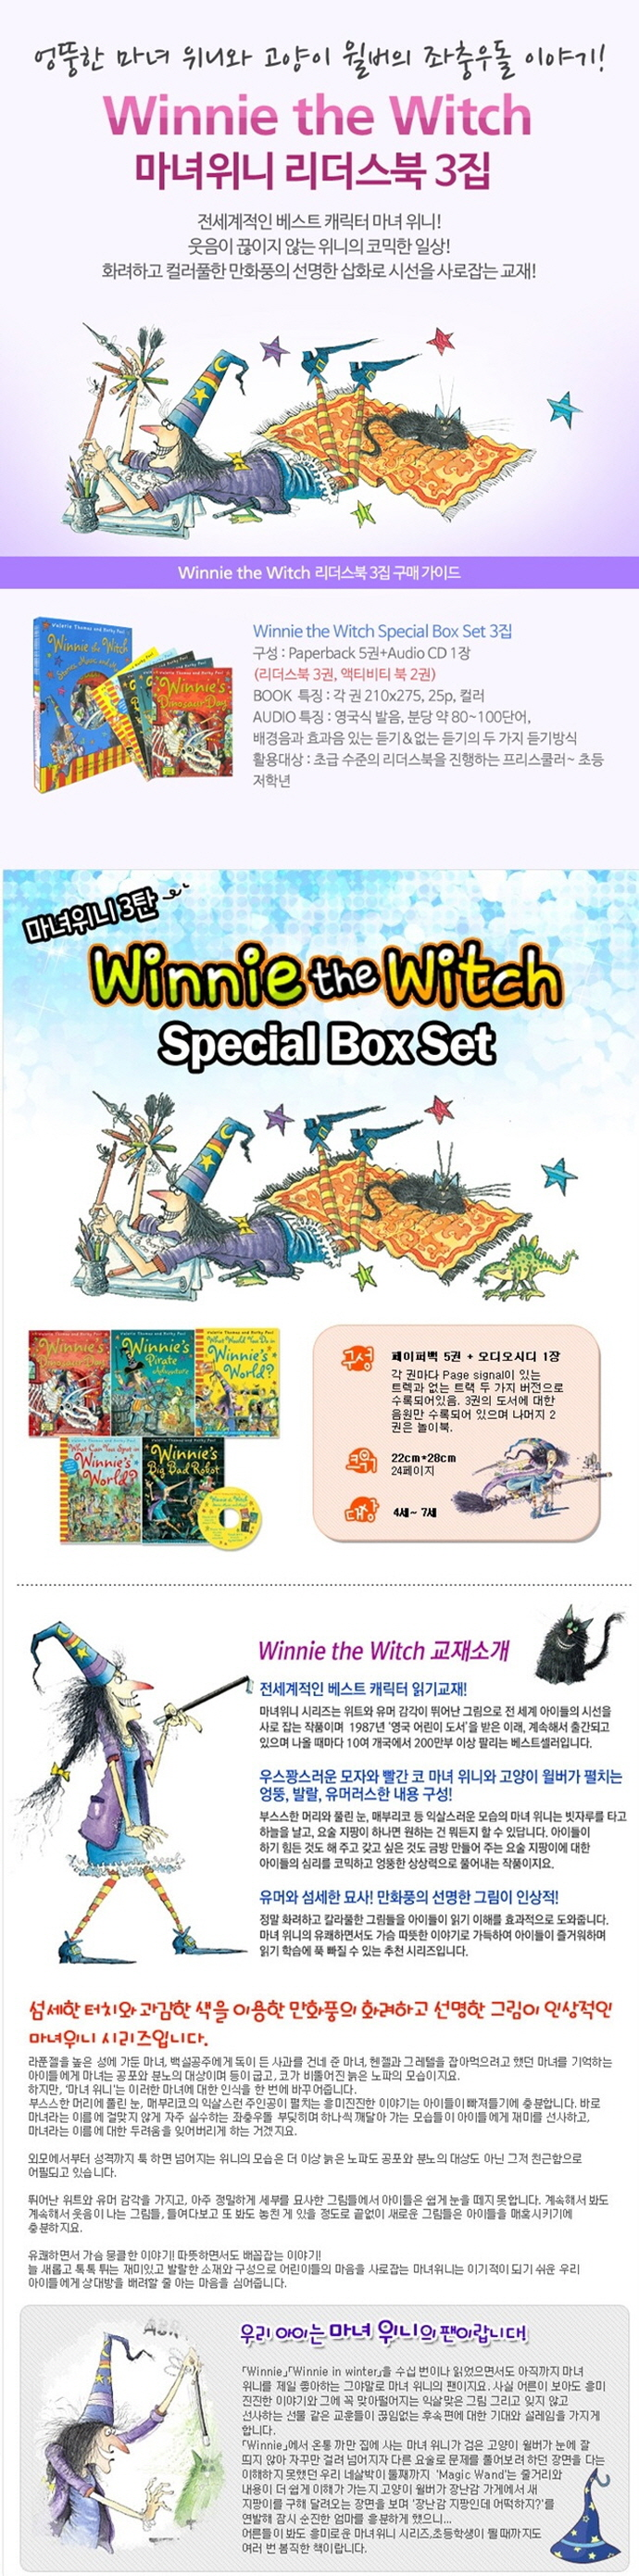 Winnie the Witch: Stories, Music, and Magic! (5 books with CD) 도서 상세이미지